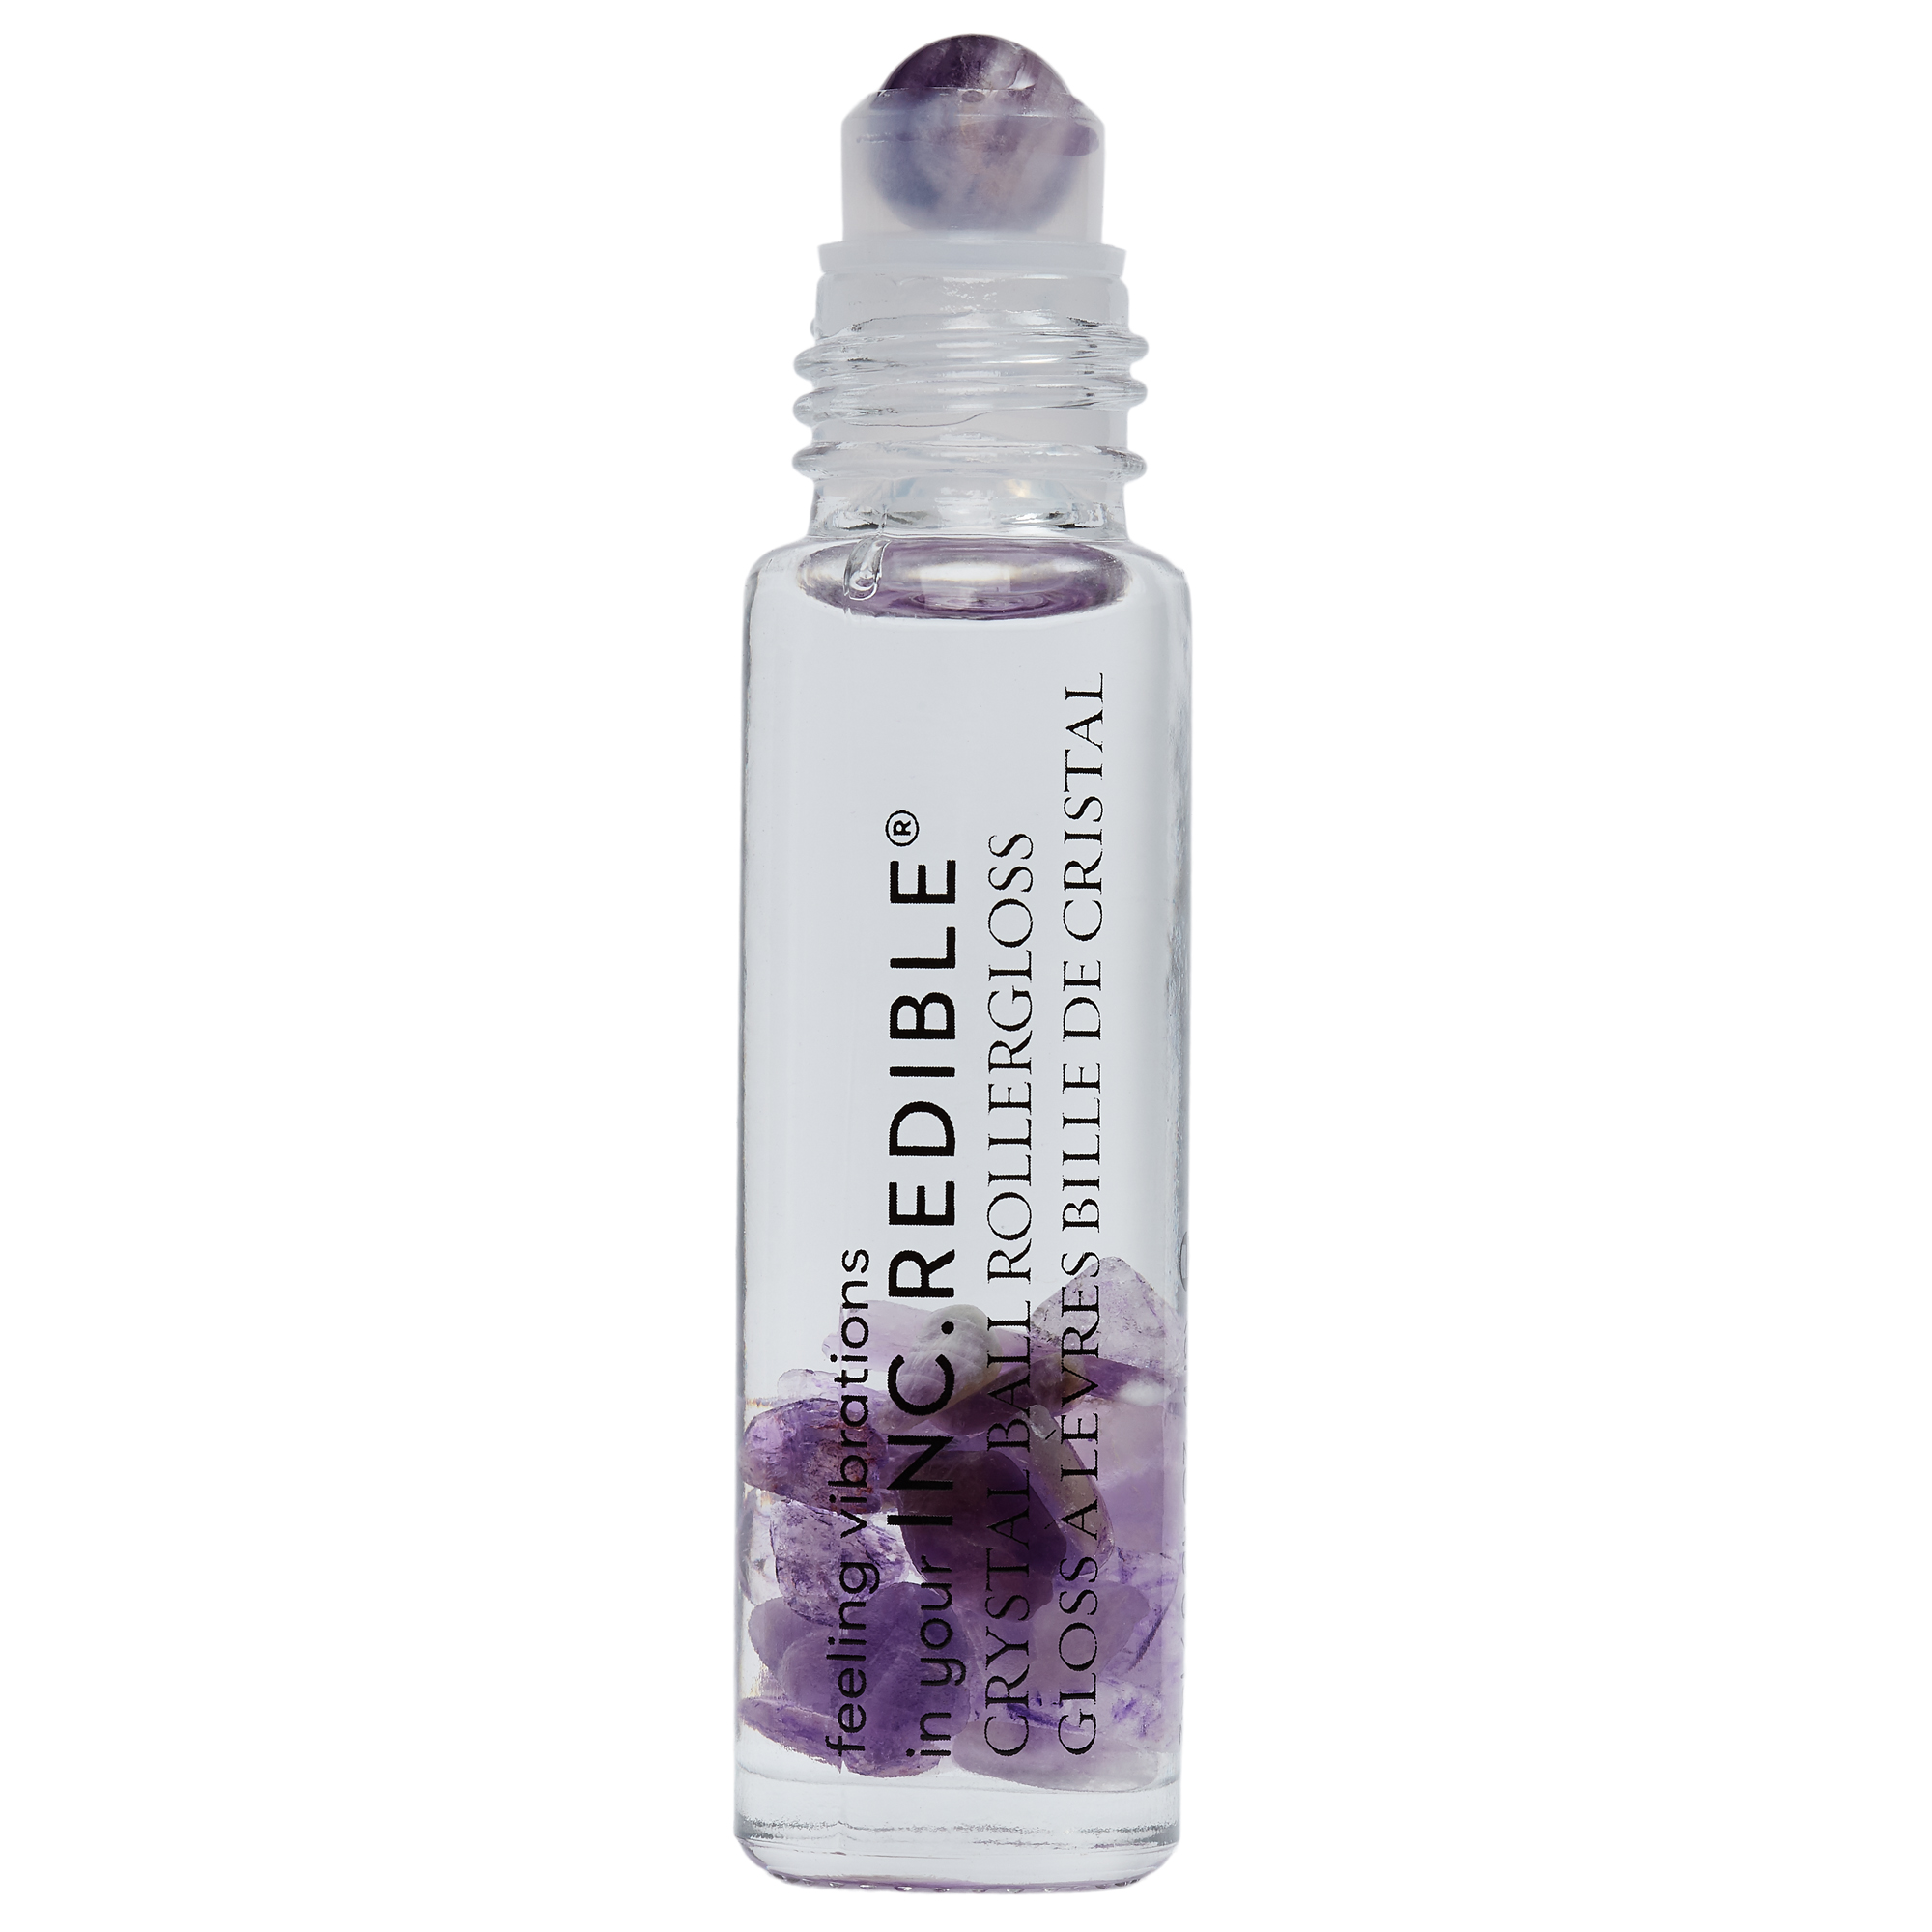 HEAL YOURSELF CRYSTAL ROLLERBALL LIPGLOSS